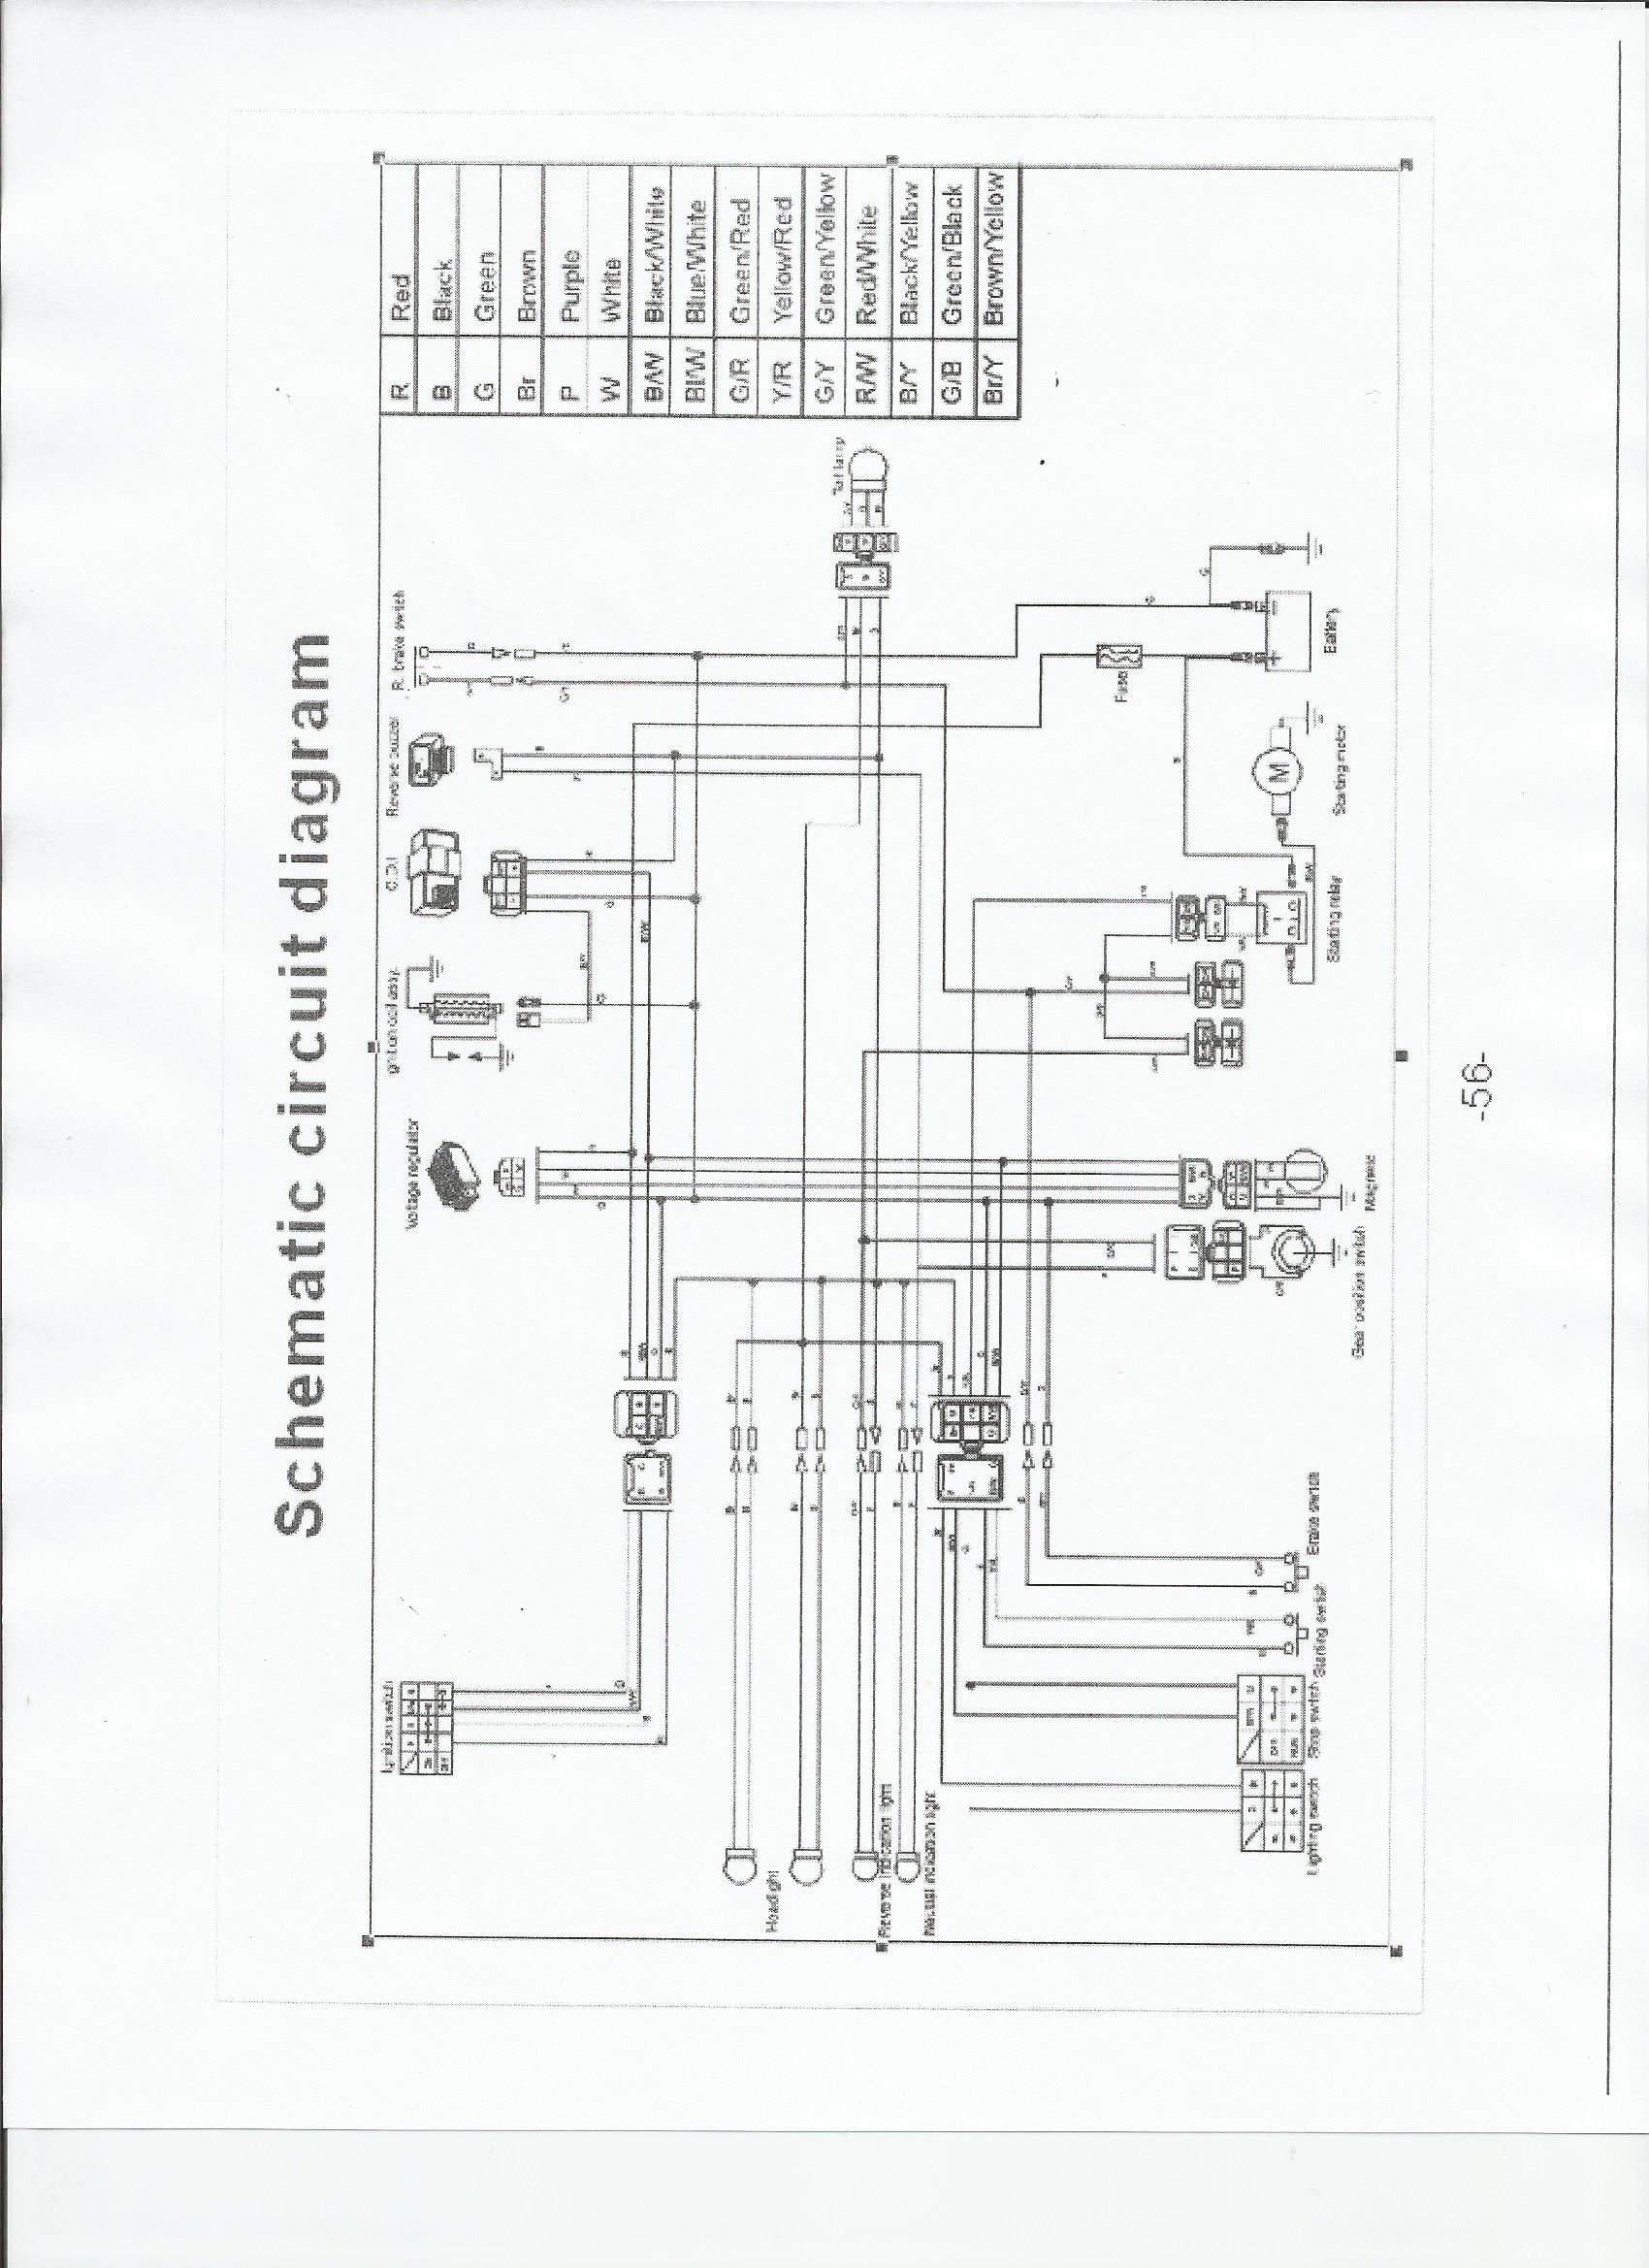 mini atv wiring diagram mini wiring diagrams tao tao wiring schematic